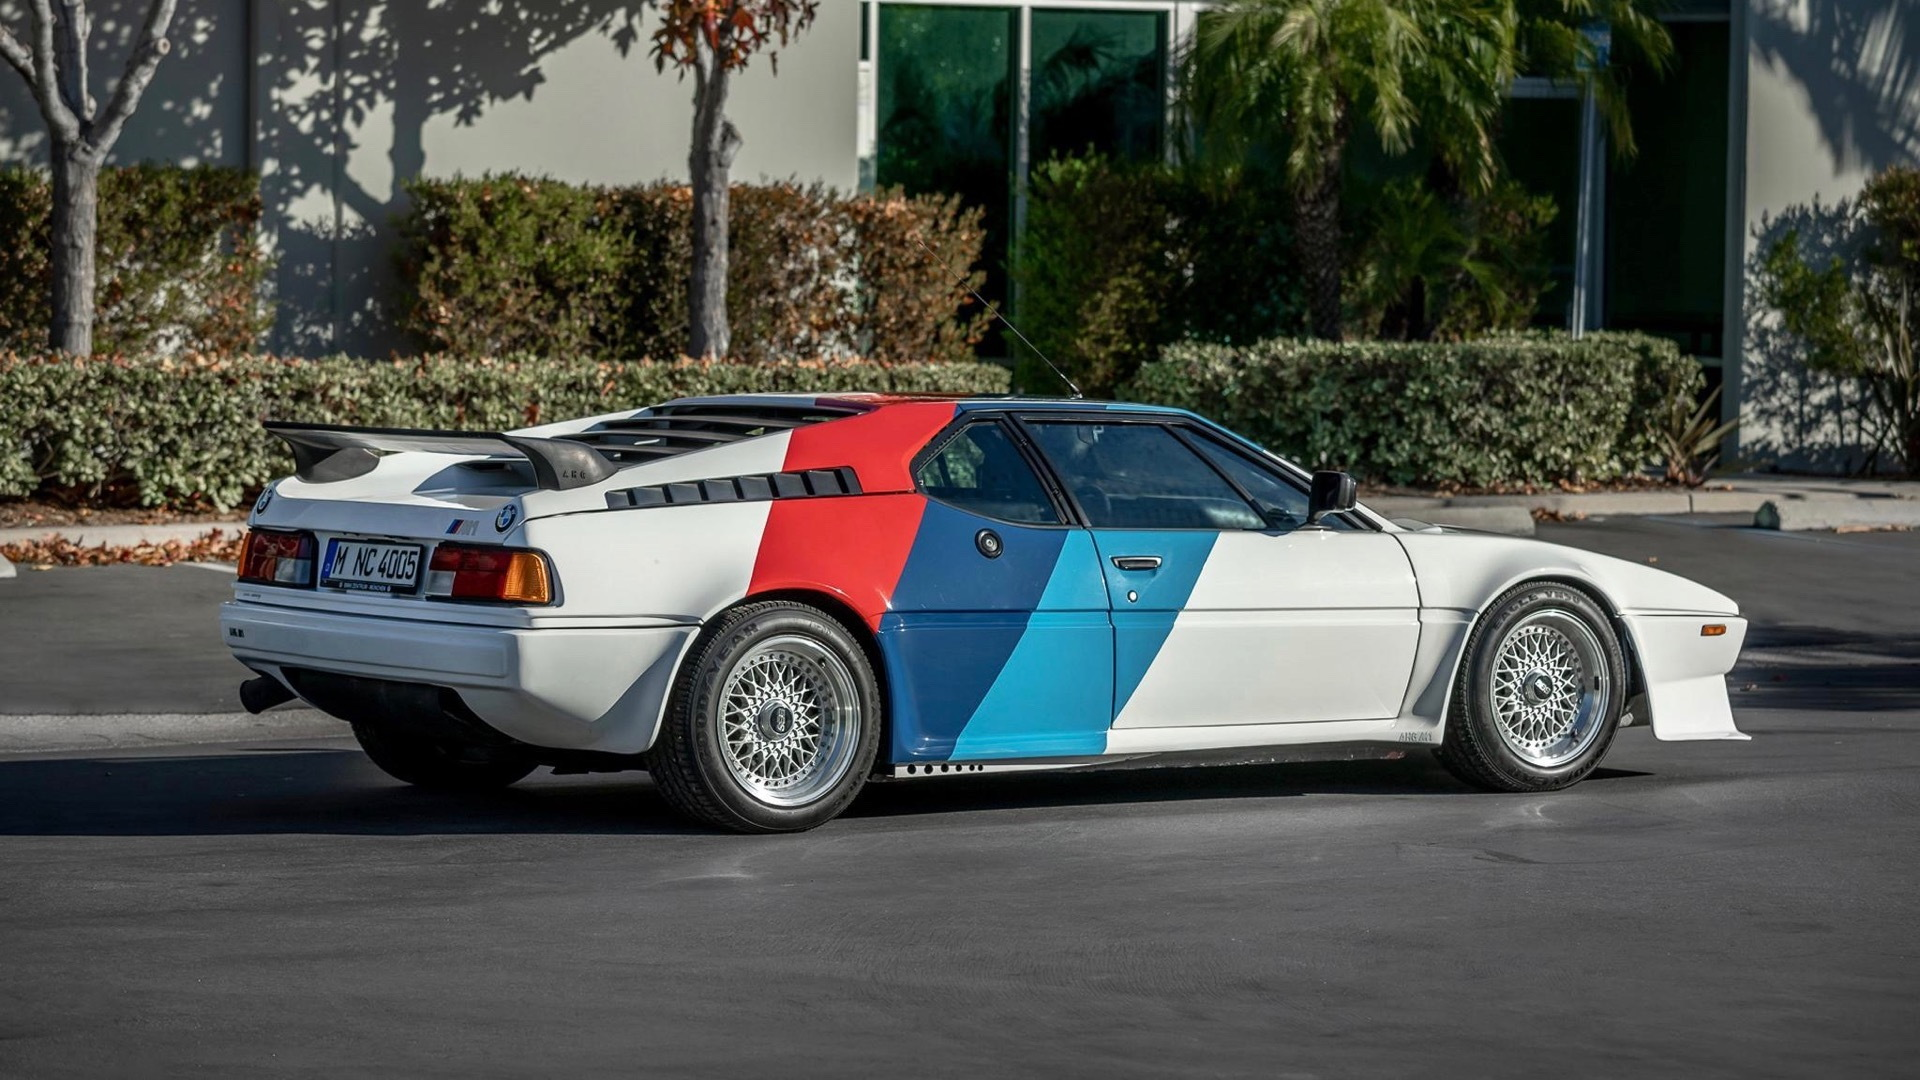 1980 BMW M1 AHG owned by Paul Walker (Photo by Bring a Trailer)